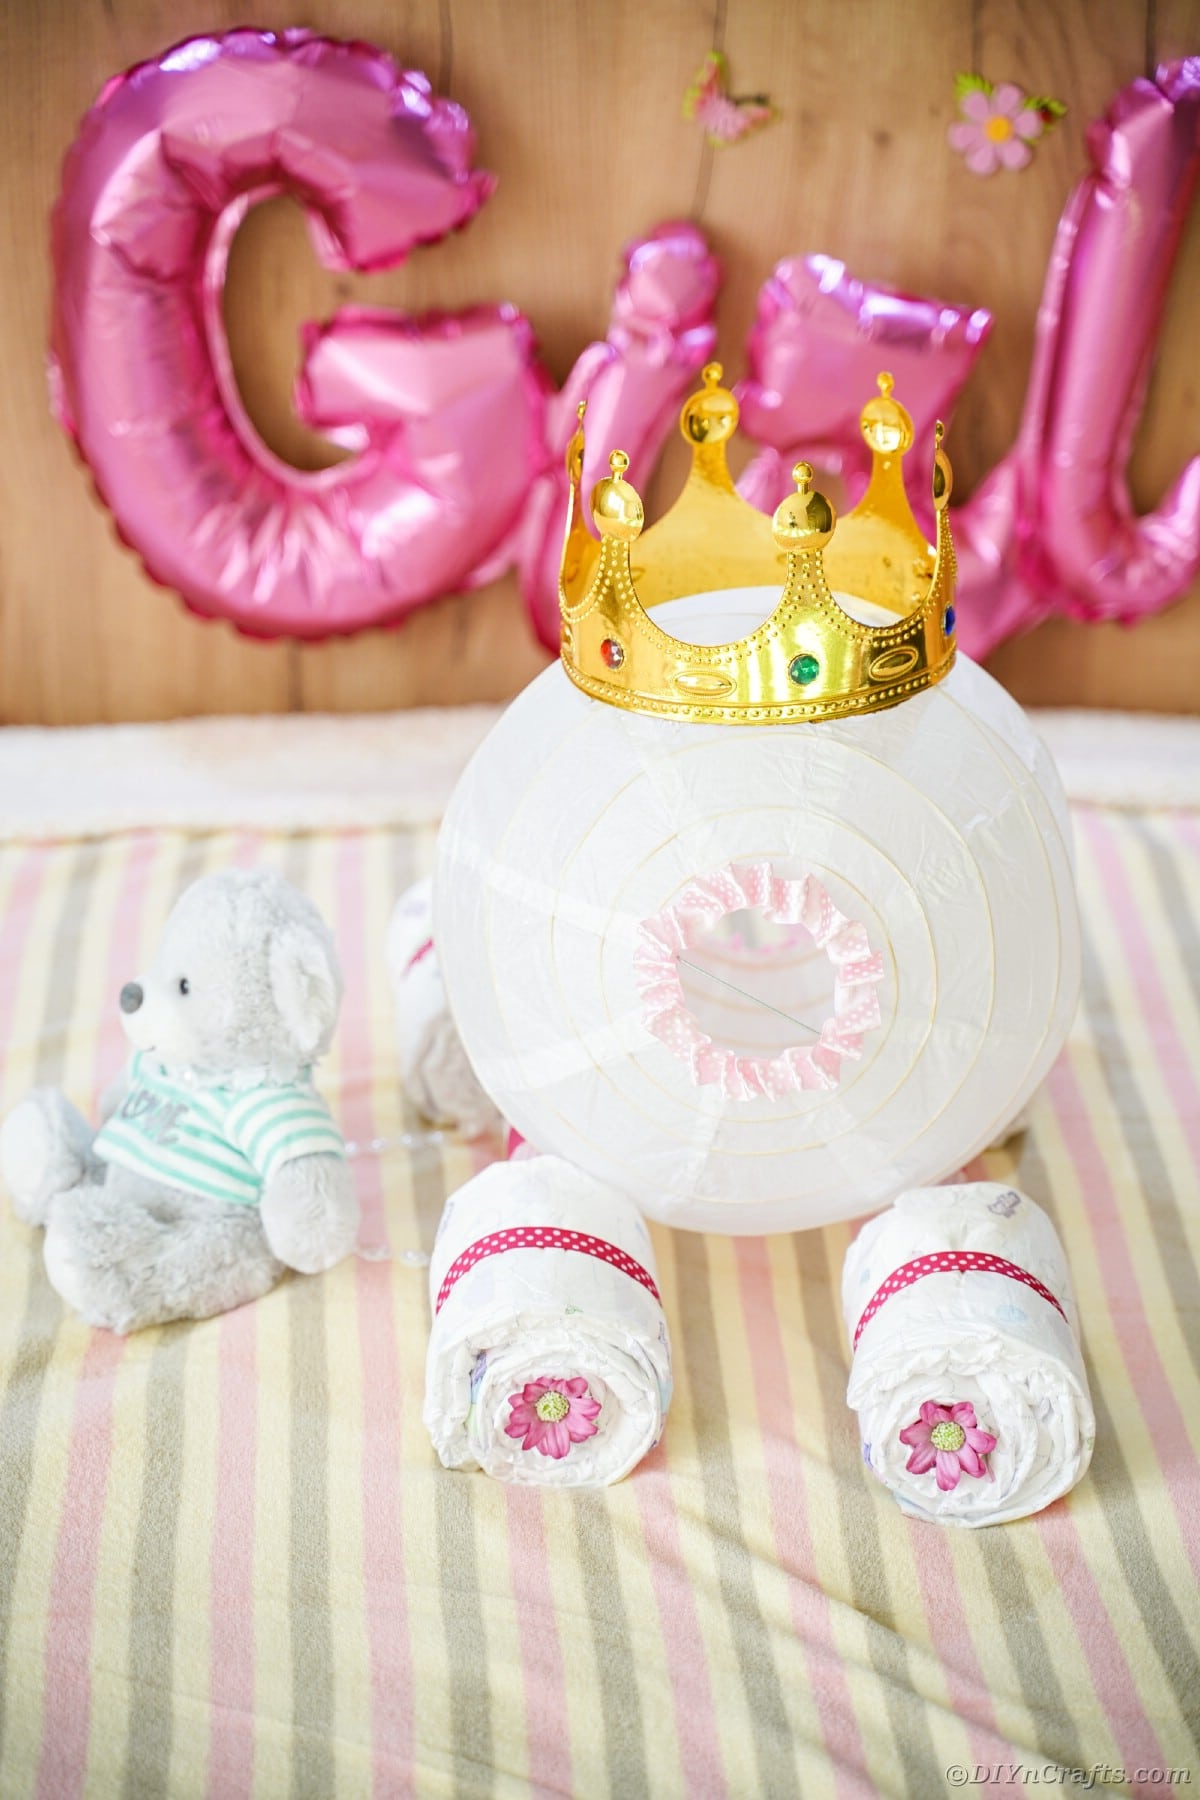 Carriage diaper cake on striped bedding with girl balloon in background